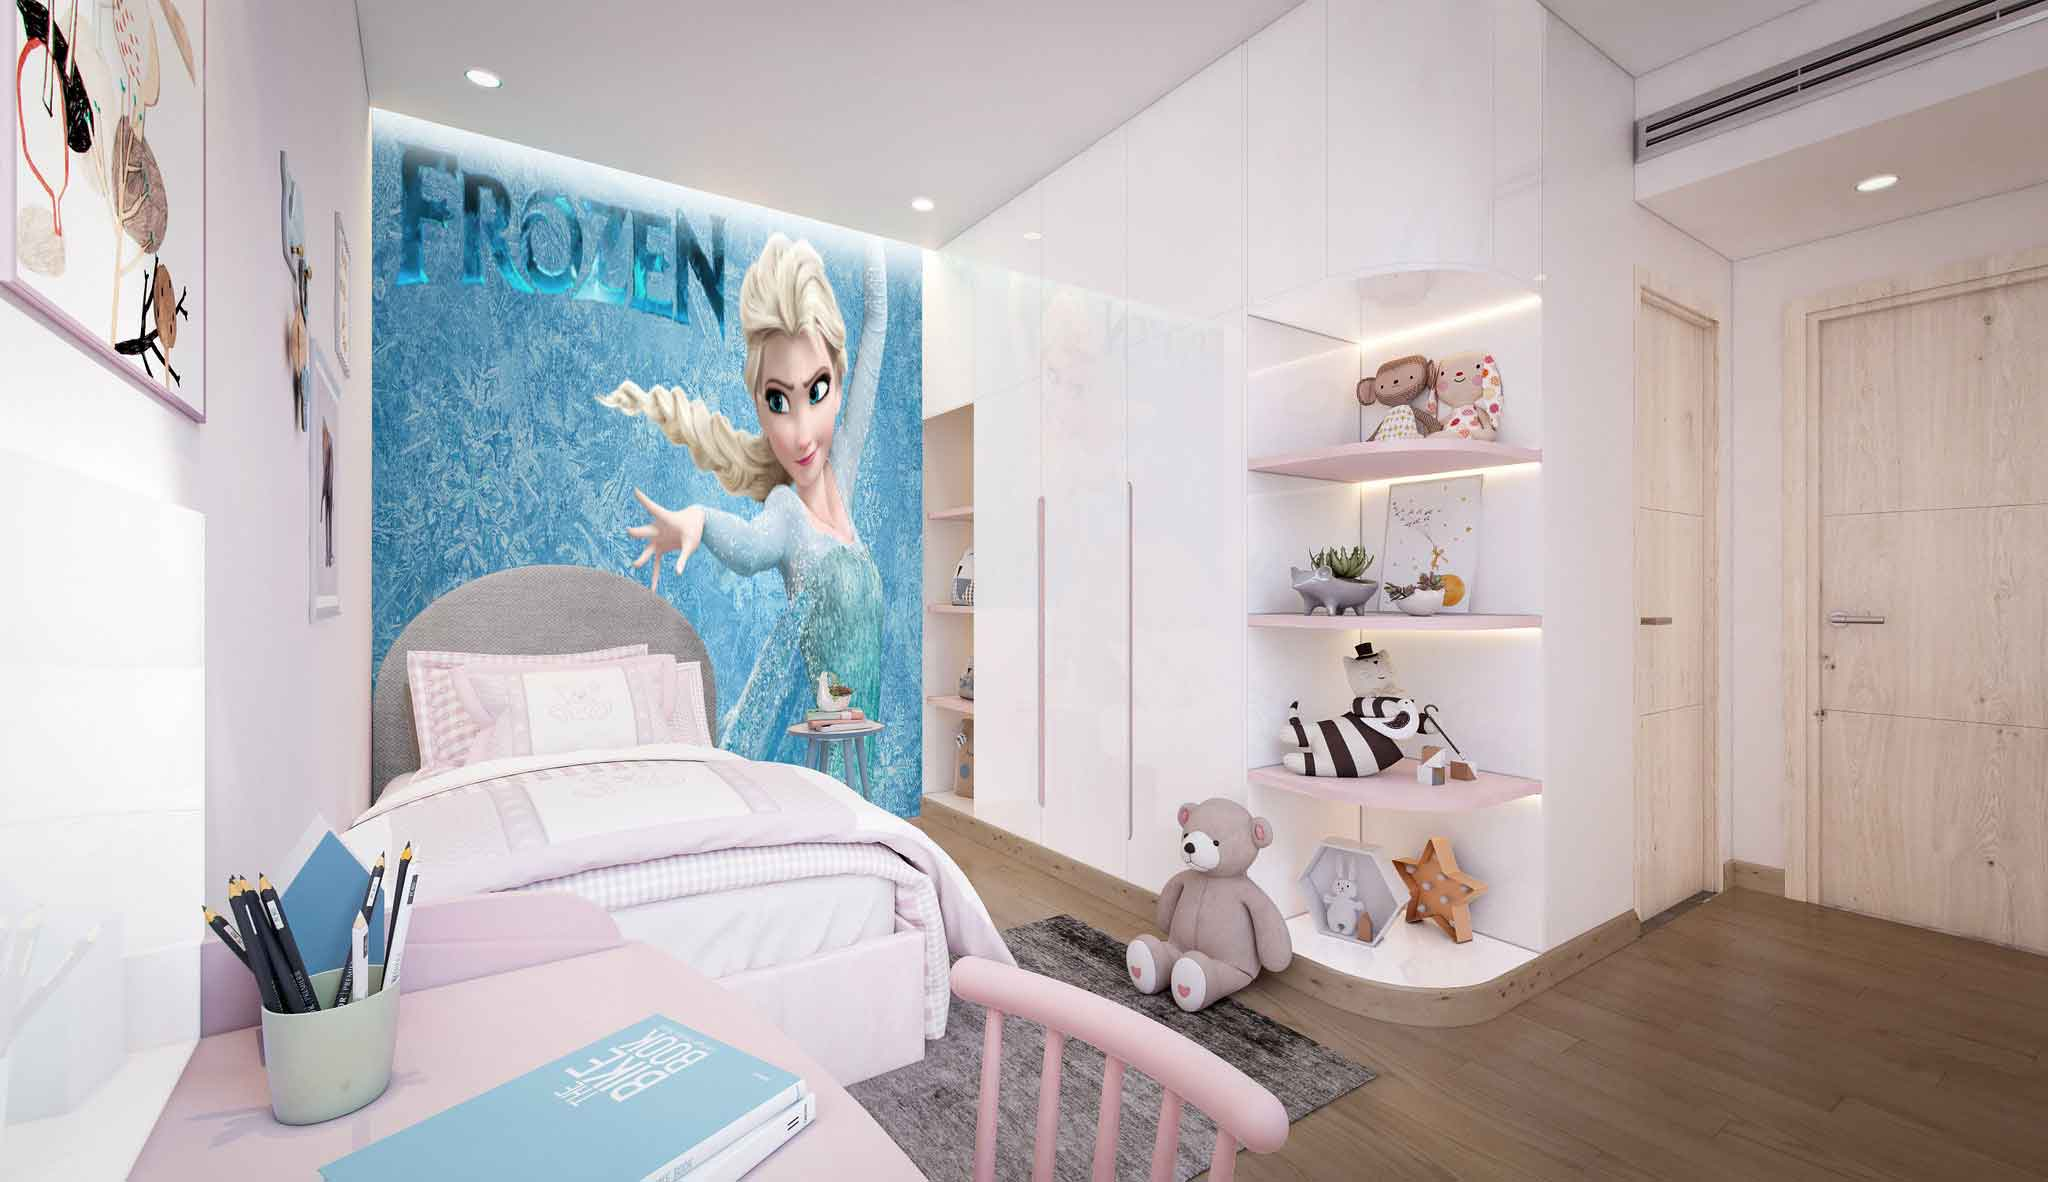 11 Awesome Bedroom Inspiration Ideas You Shouldn't Miss | Roy Home Design